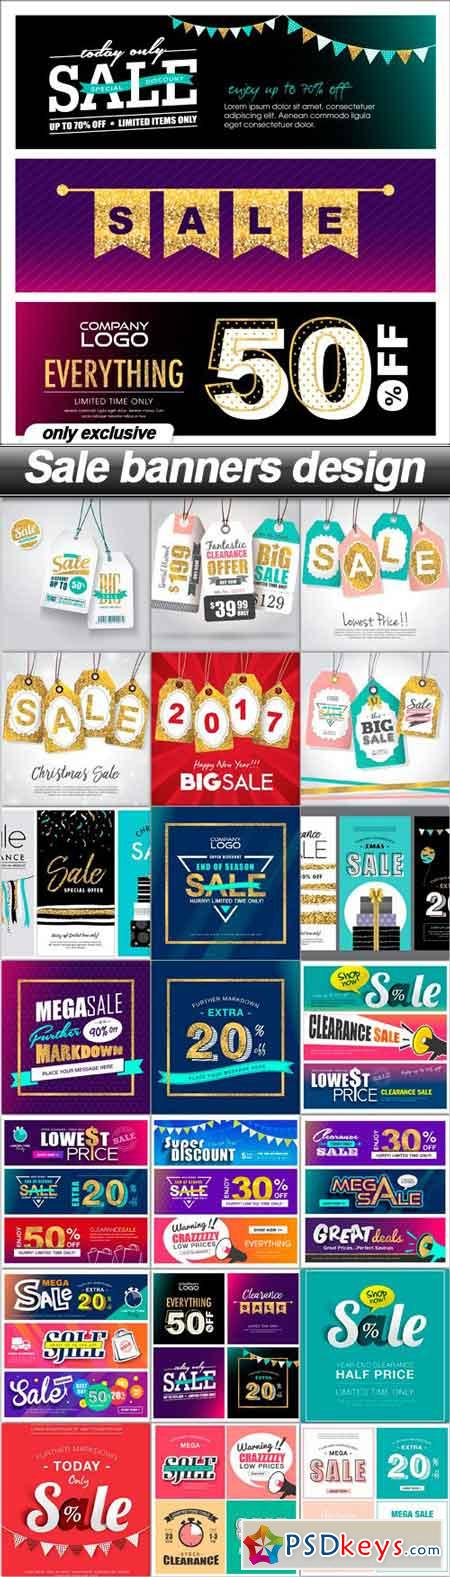 Sale banners design - 22 EPS